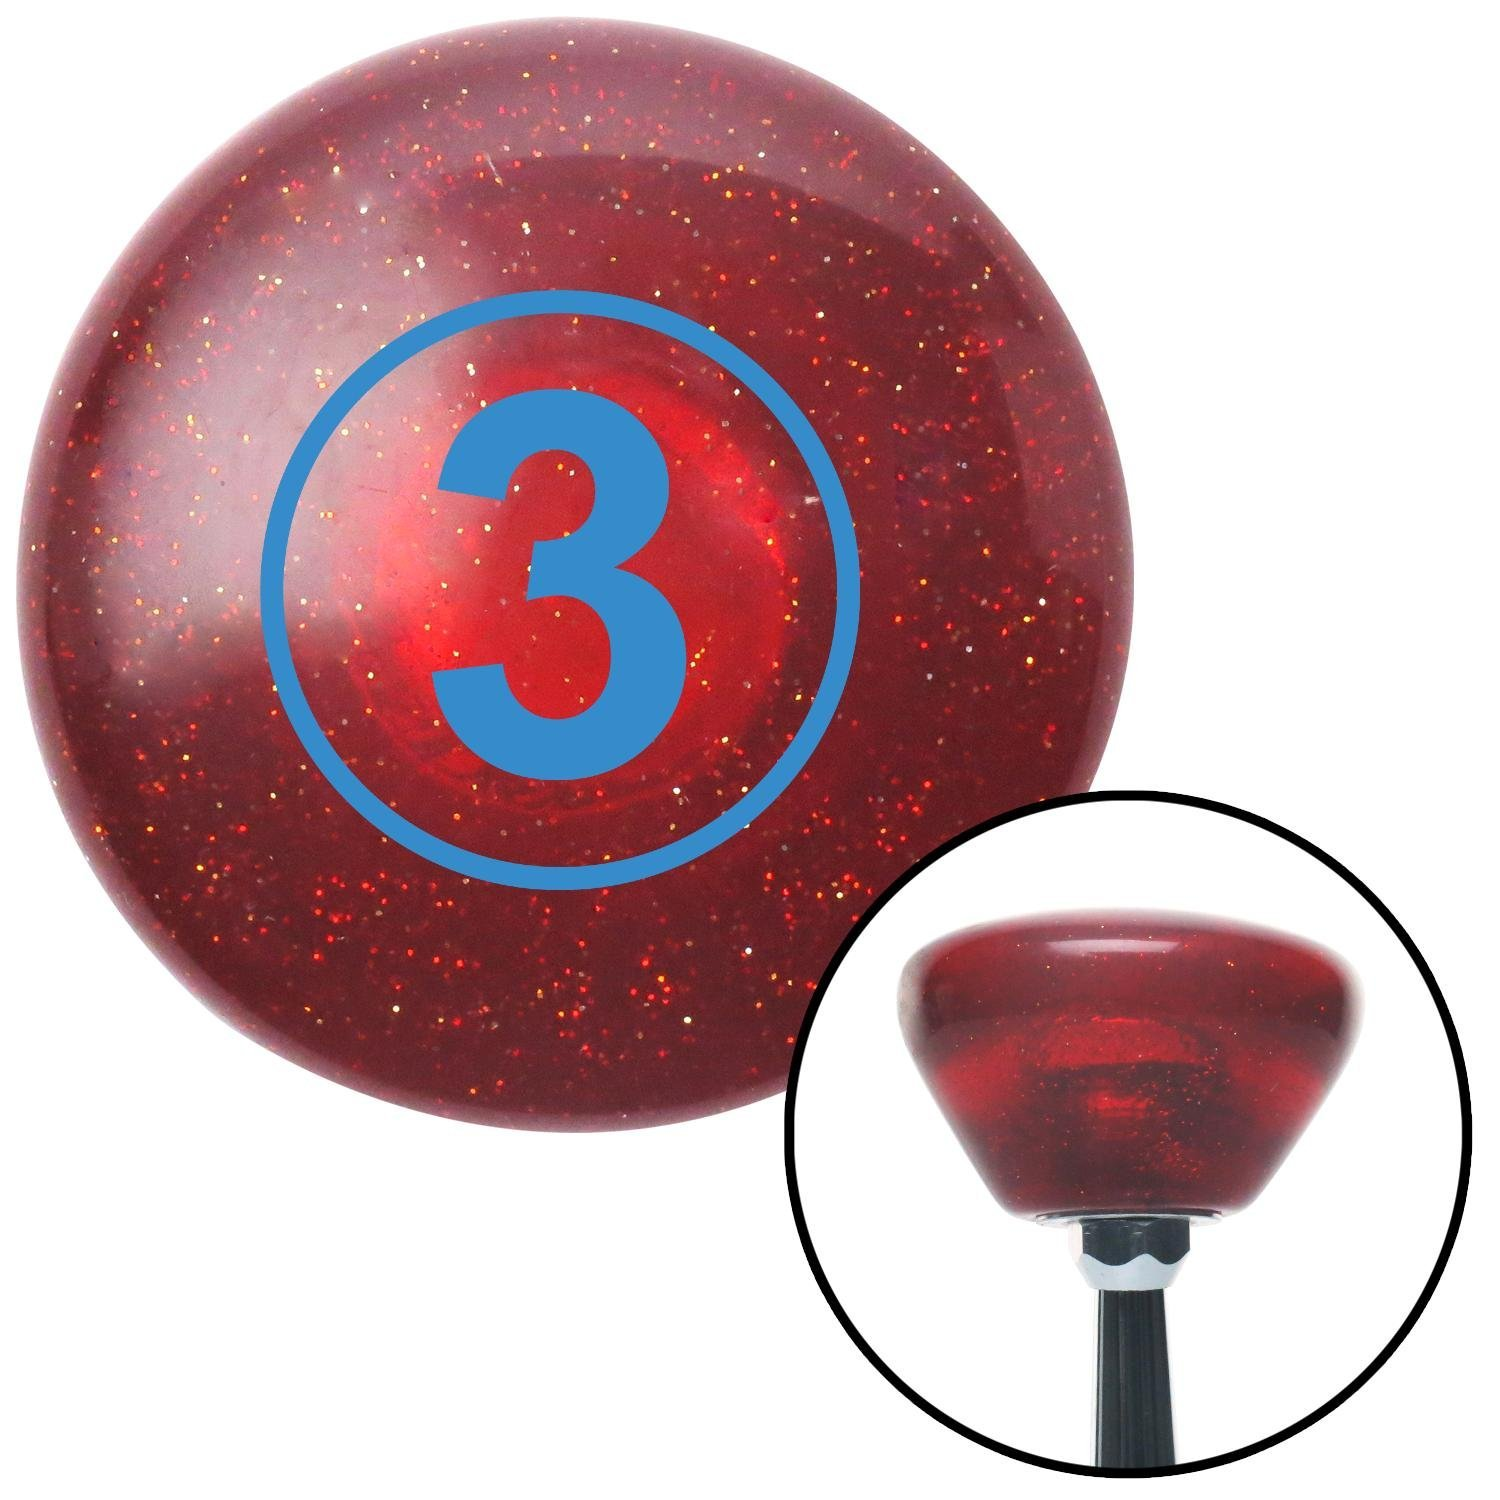 American Shifter 193529 Red Retro Metal Flake Shift Knob with M16 x 1.5 Insert Blue Ball #3